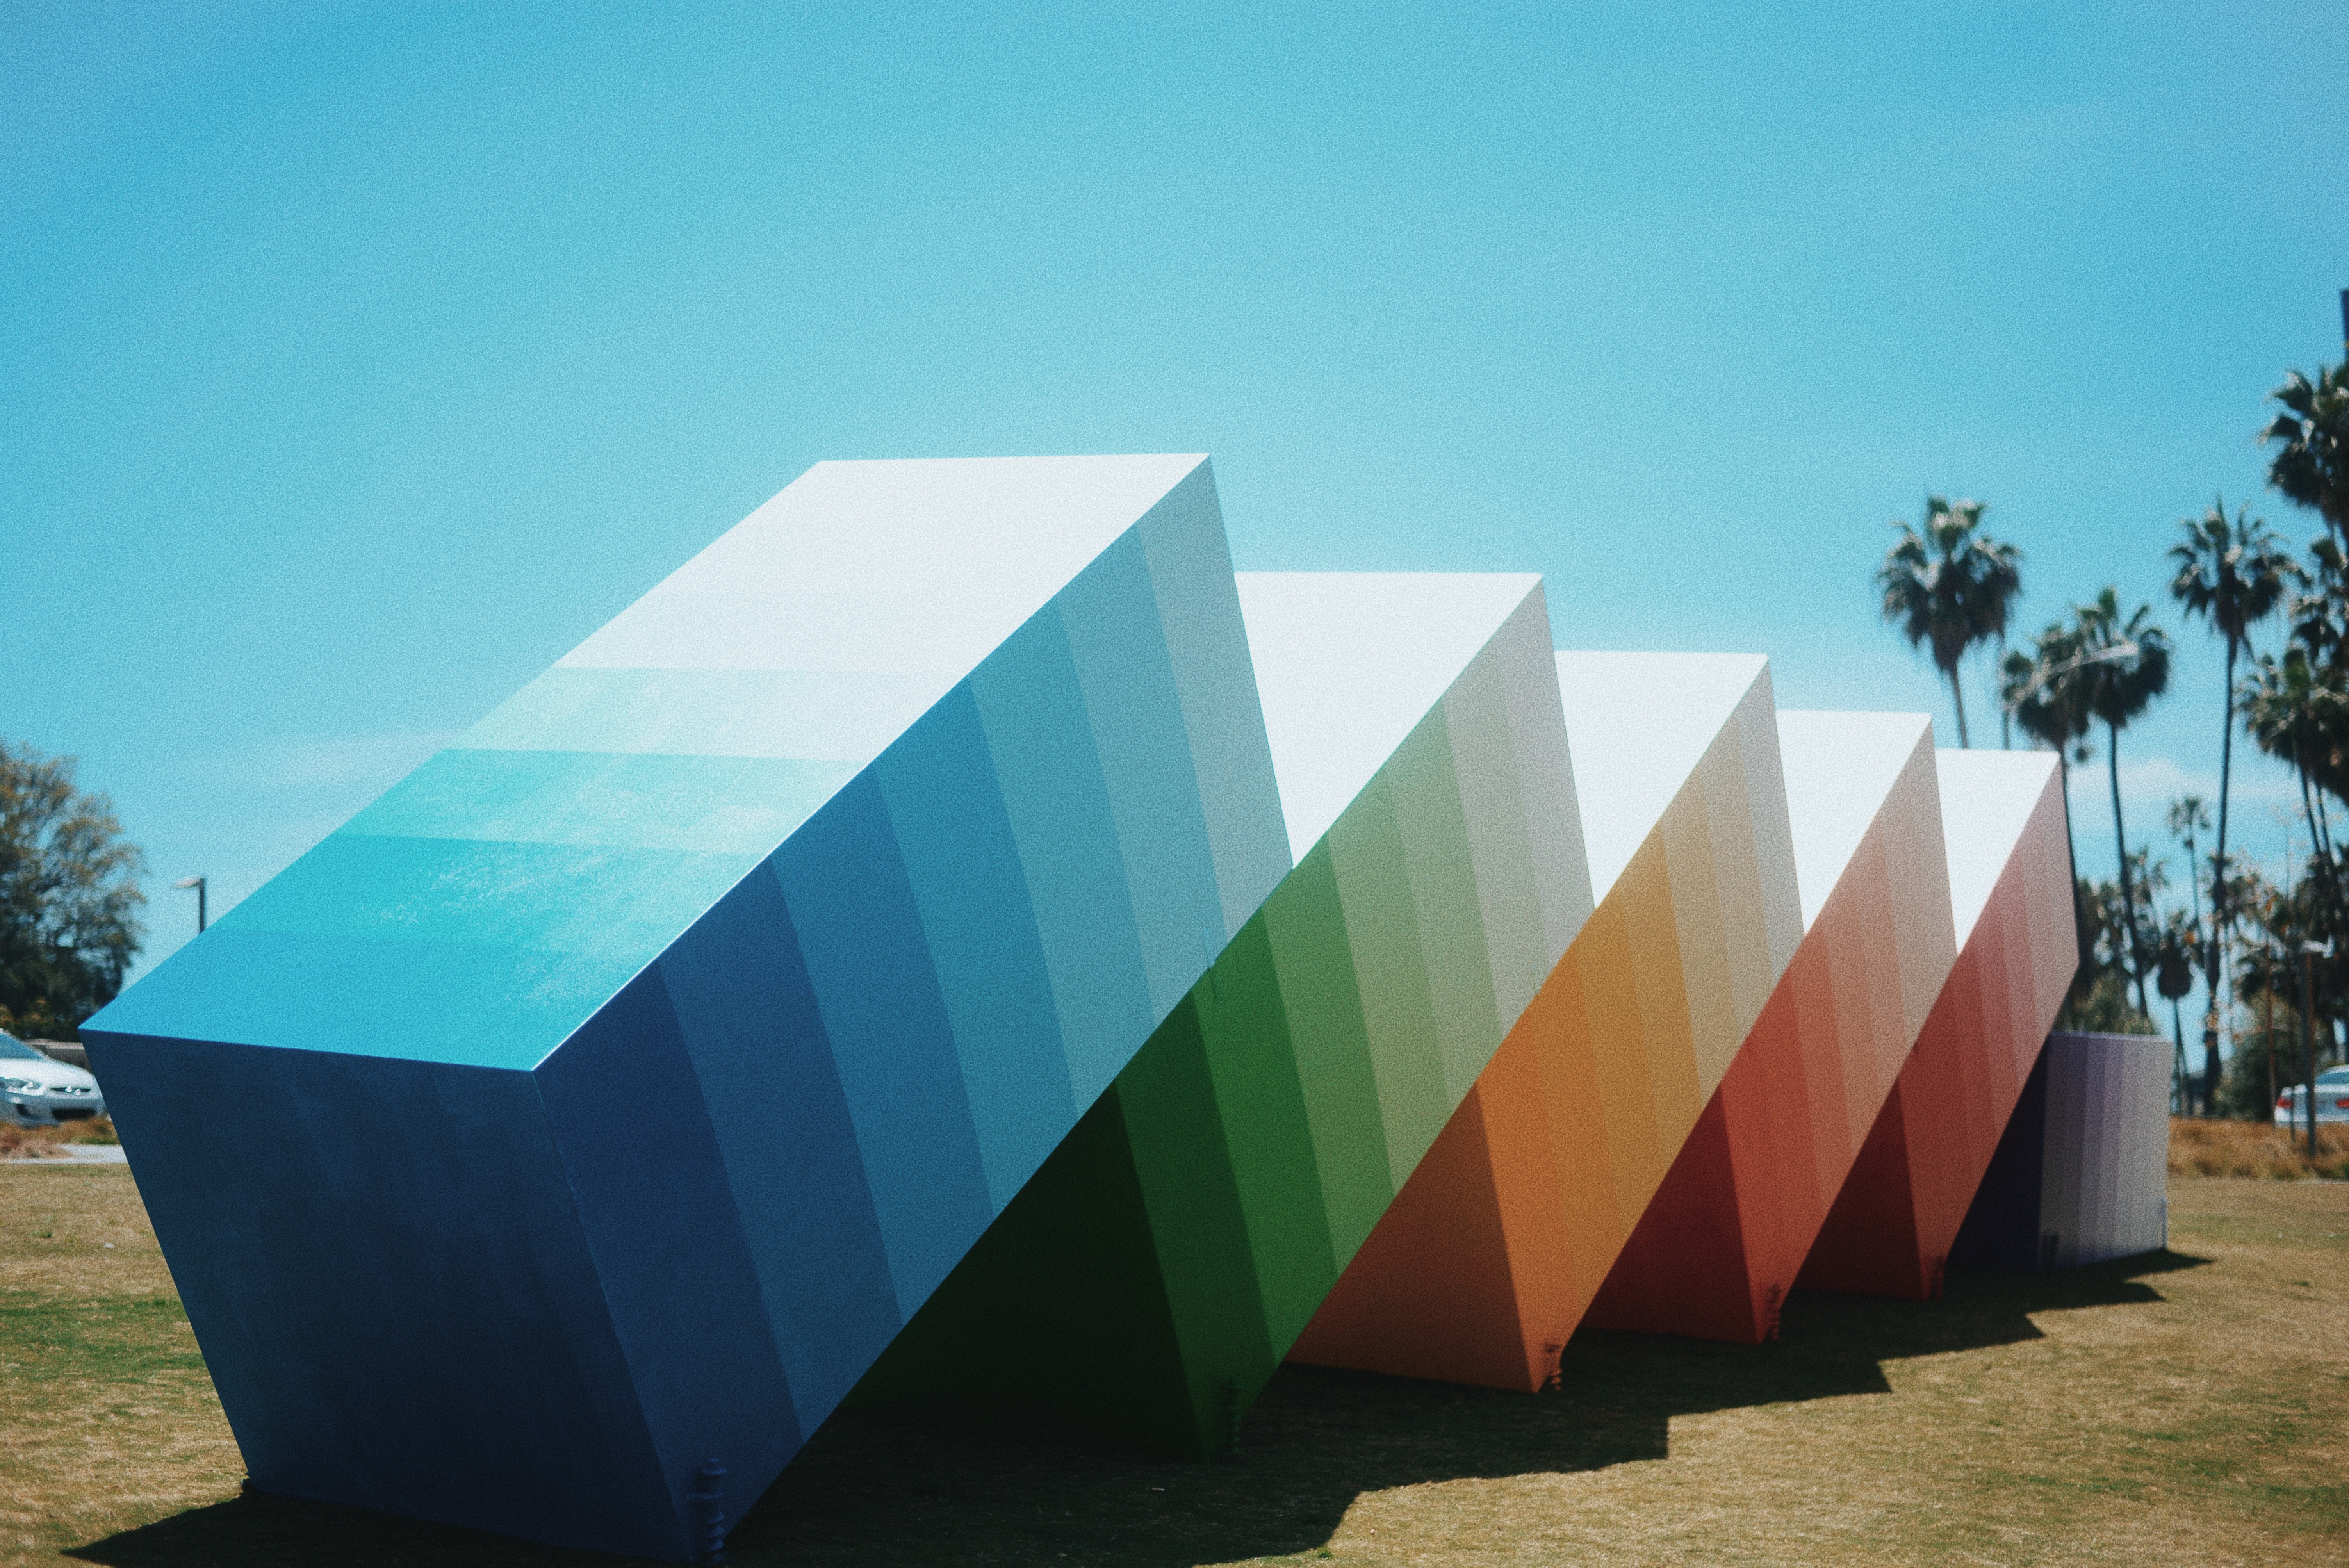 multicolored stair cube on grass field